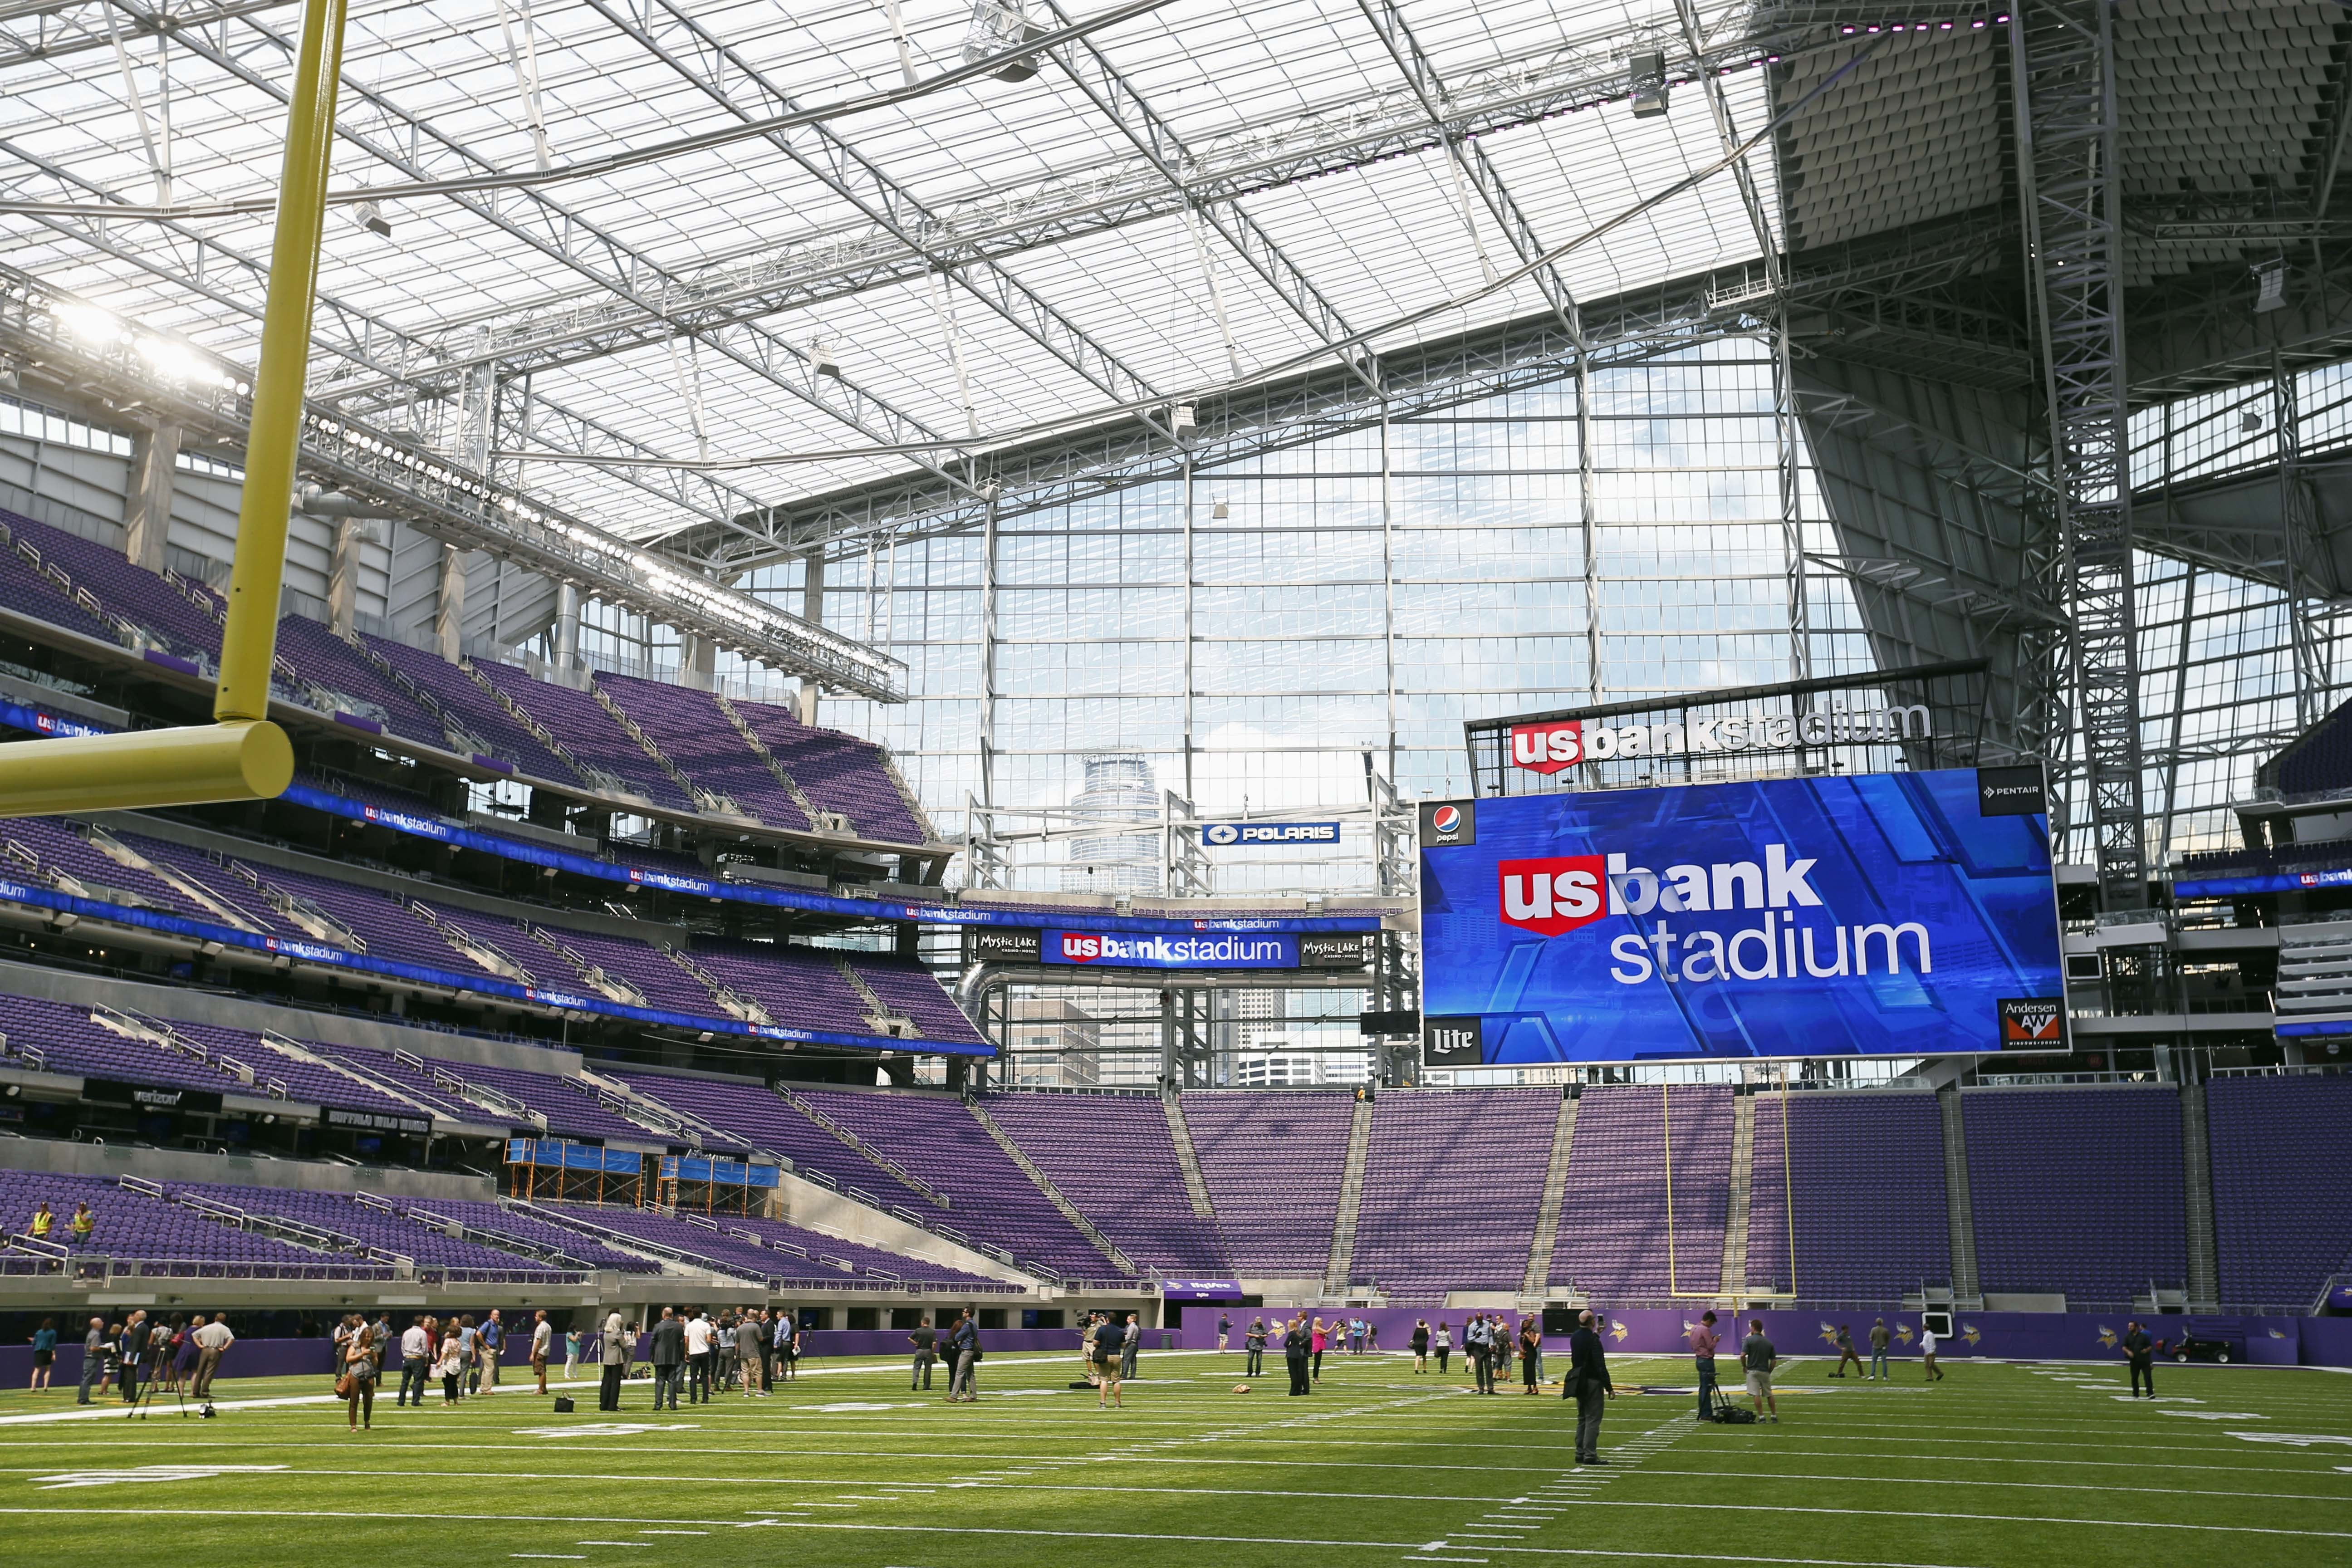 FILE - In this July 19, 2016, file photo, U.S. Bank Stadium, the Minnesota Vikings NFL football team's new stadium, is seen during a media tour in Minneapolis. ESPN's X Games will be held in Minneapolis in 2017 and 2018, with many of the events being held